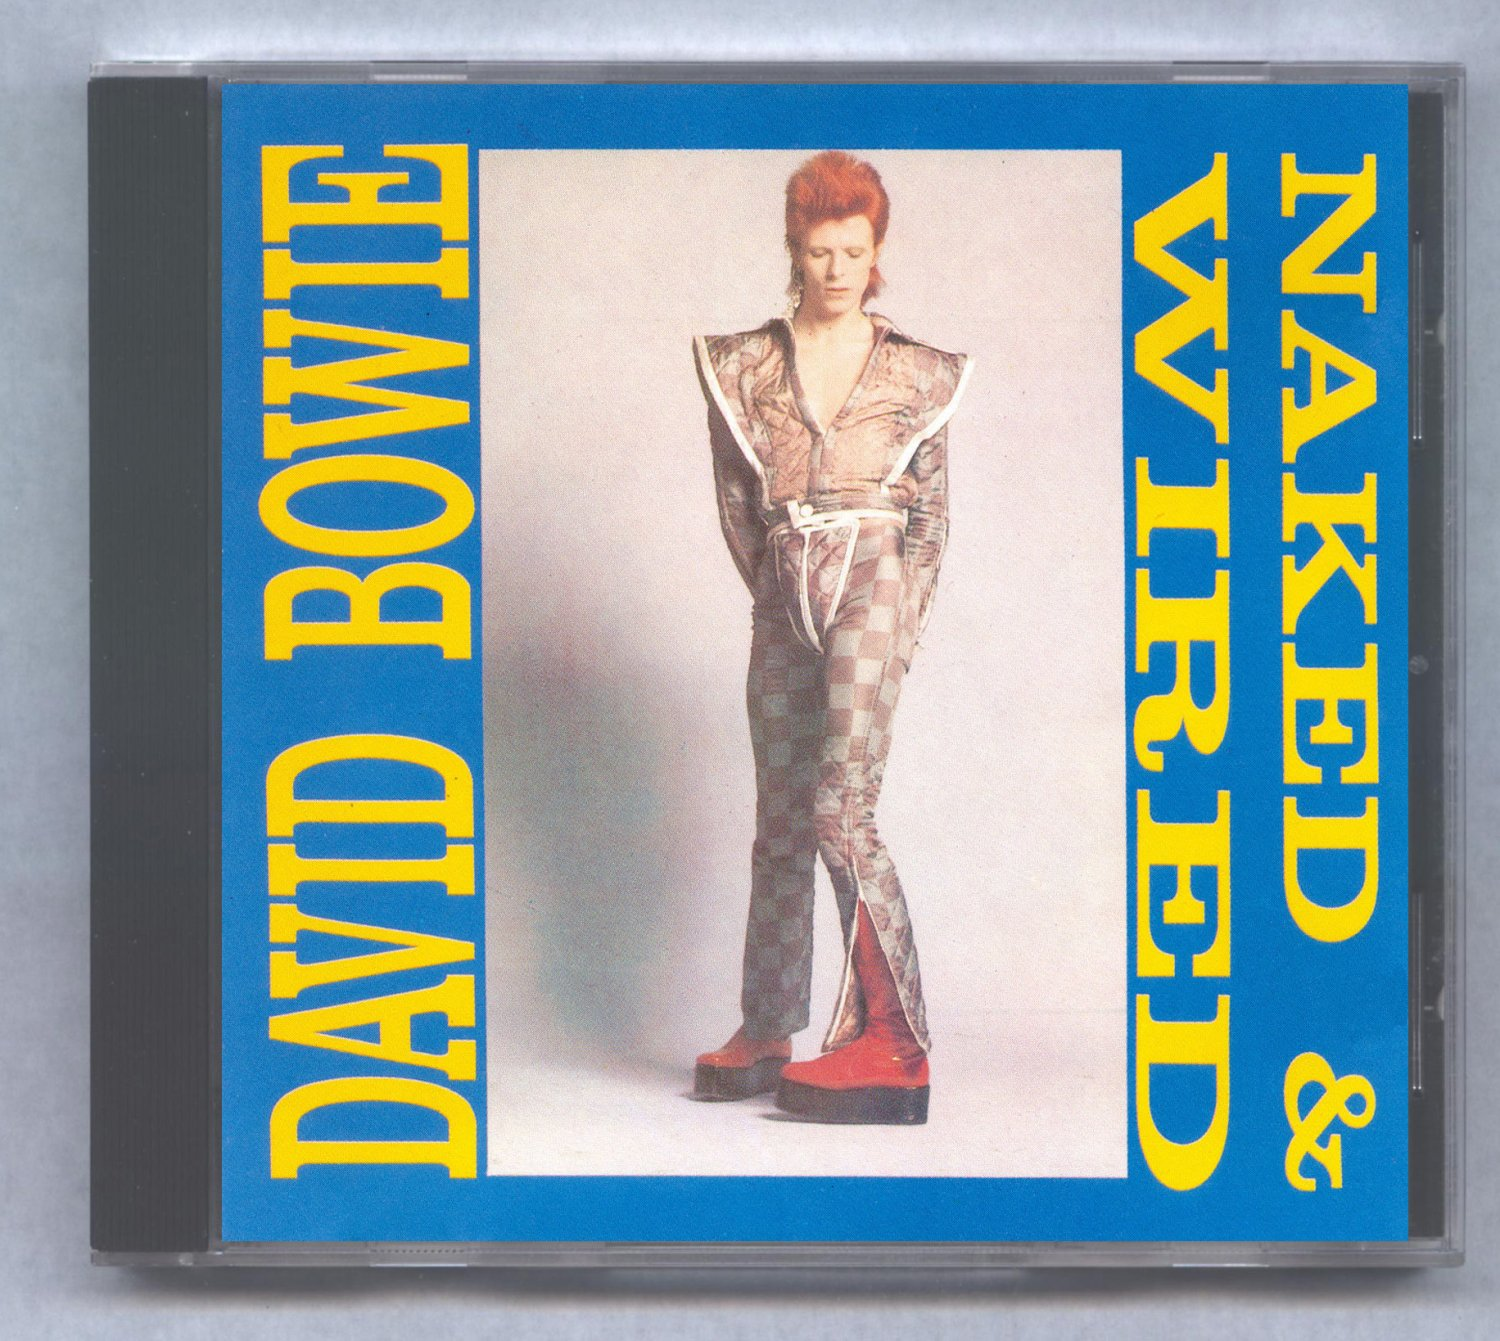 David Bowie Naked and Wired Various Outtakes Demos CD